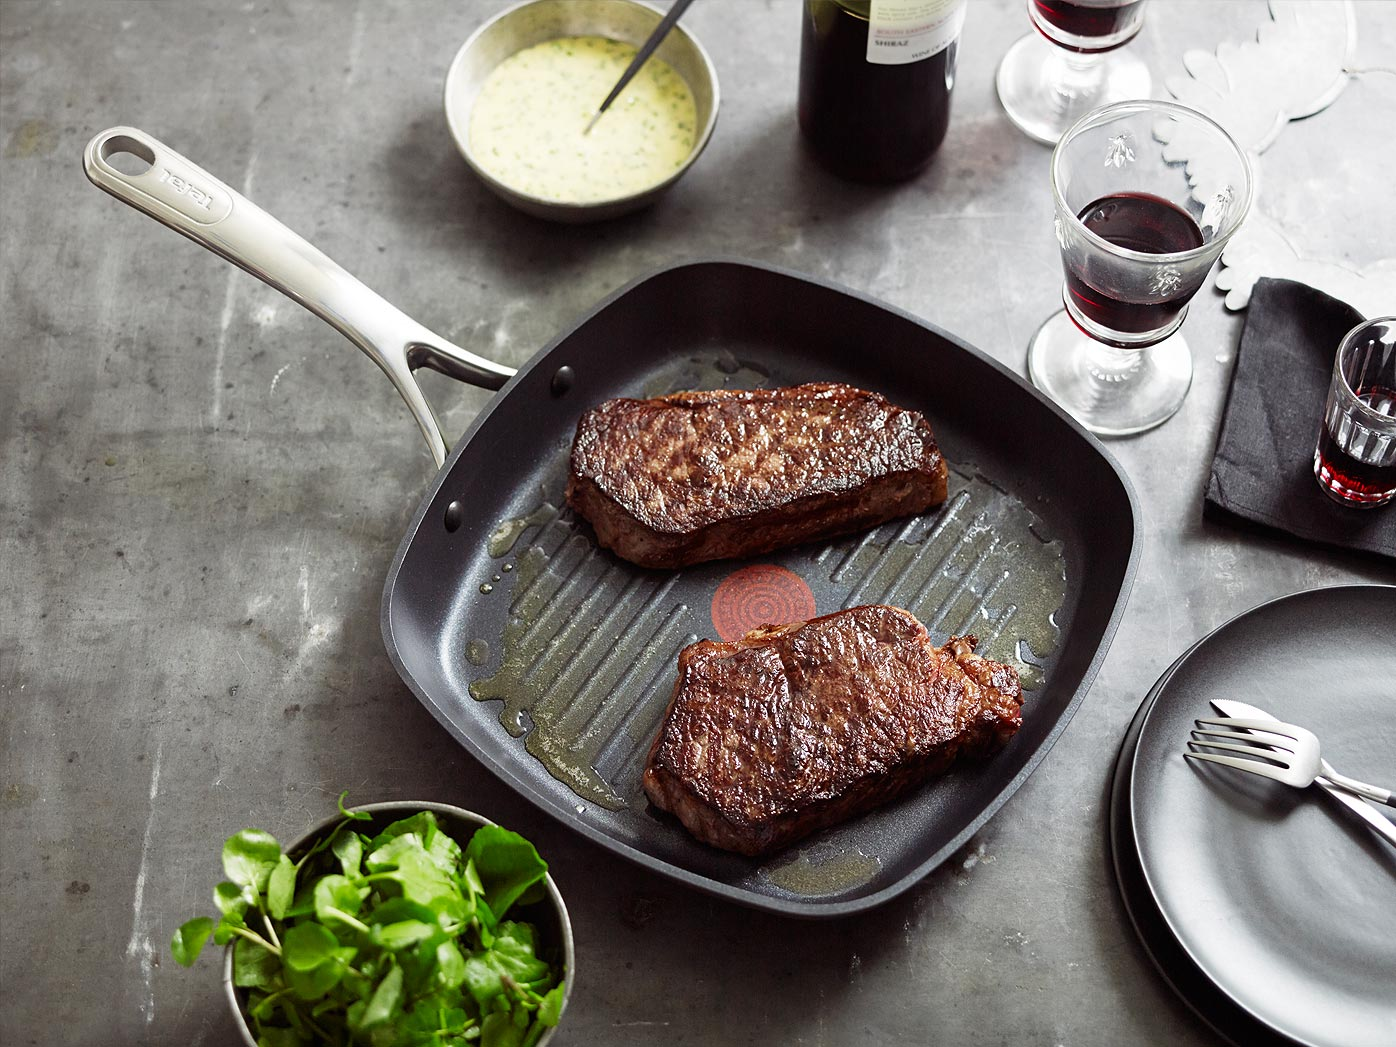 Grilled sirloin steak with béarnaise sauce and watercress